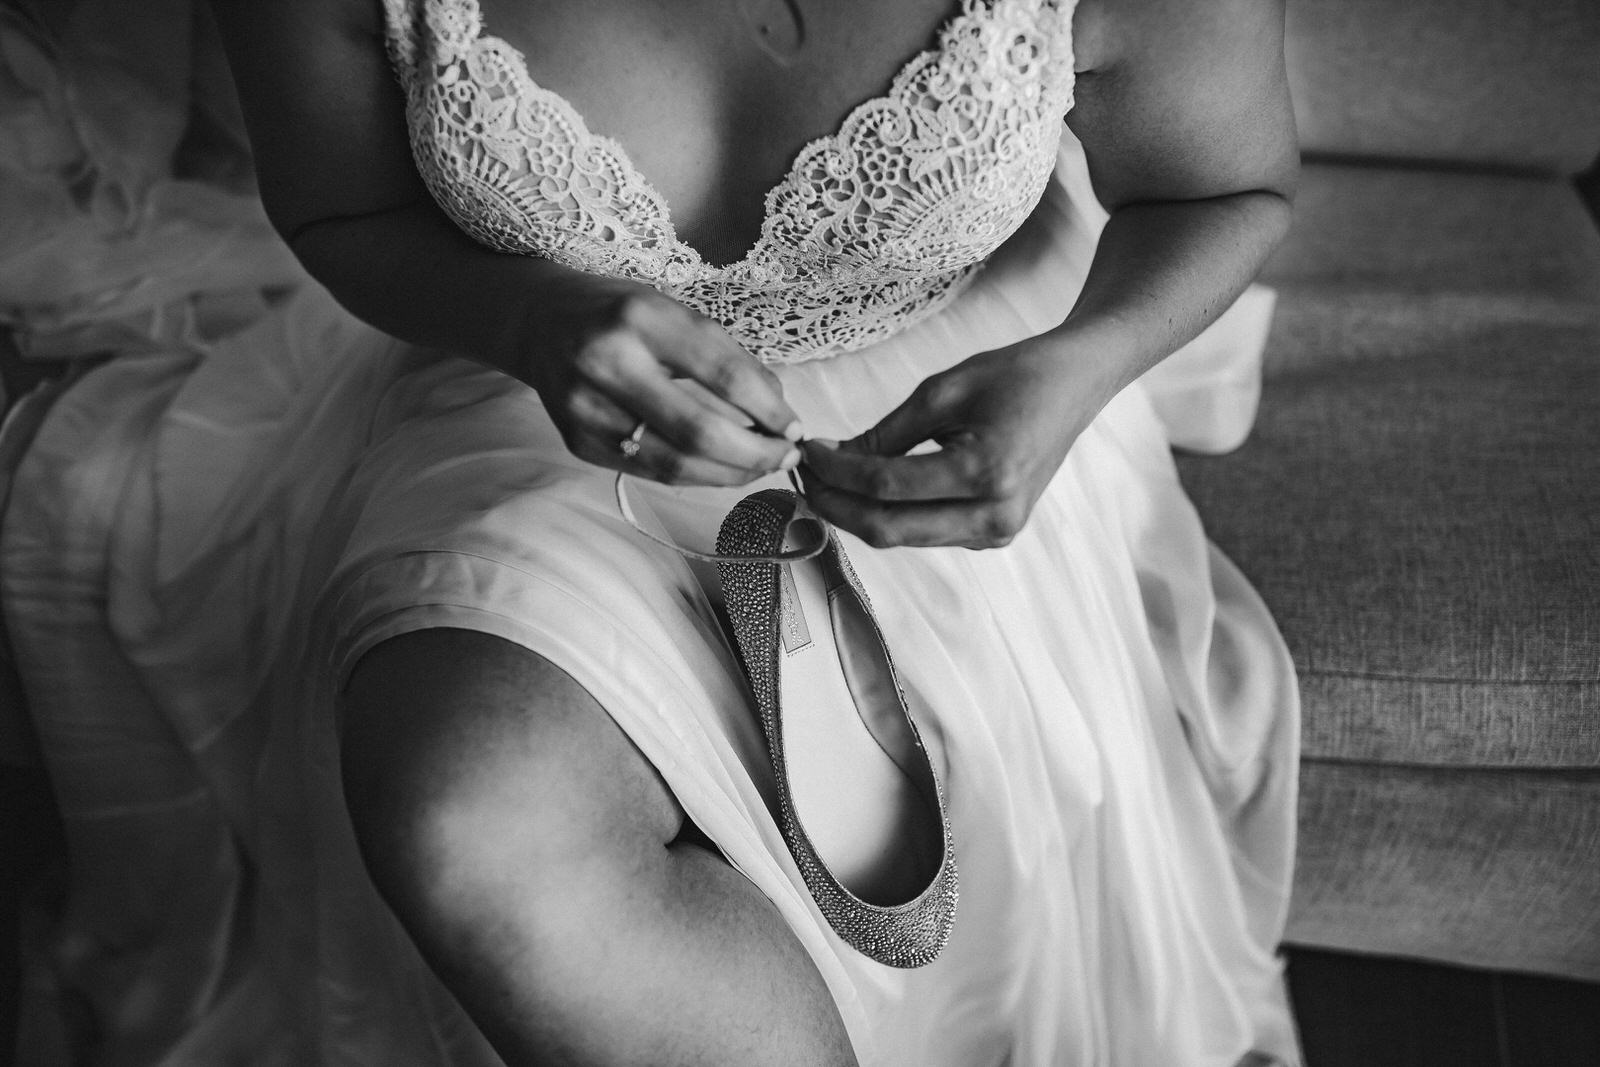 bride_getting_ready_shoes_black_and_white_wedding_photography.jpg